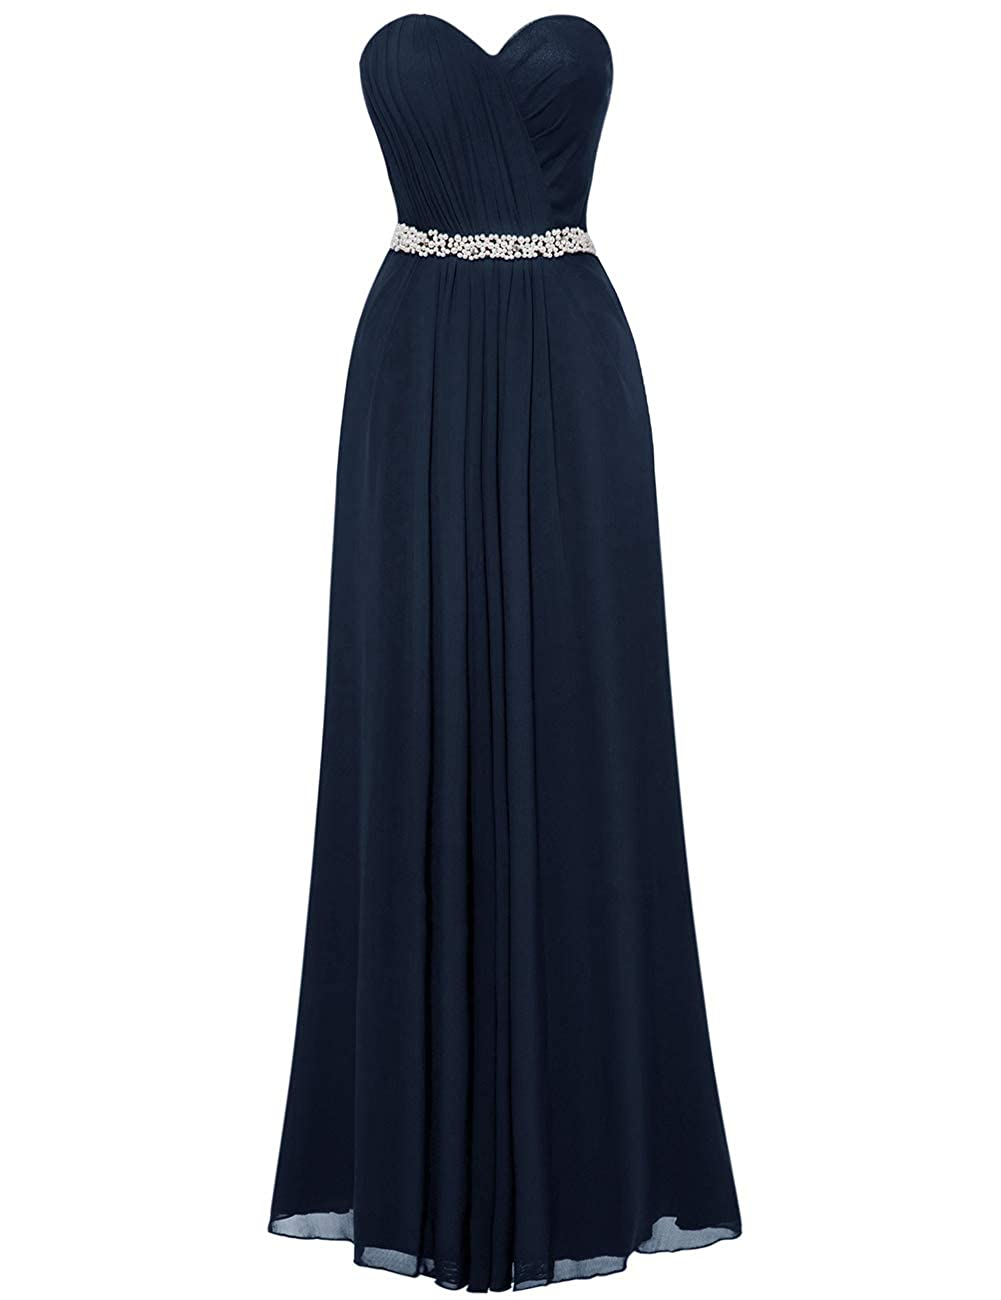 Navy bluee Uther Bridesmaid Dresses Sweetheart Pleats Long A Line Beaded Formal Women Prom Gown